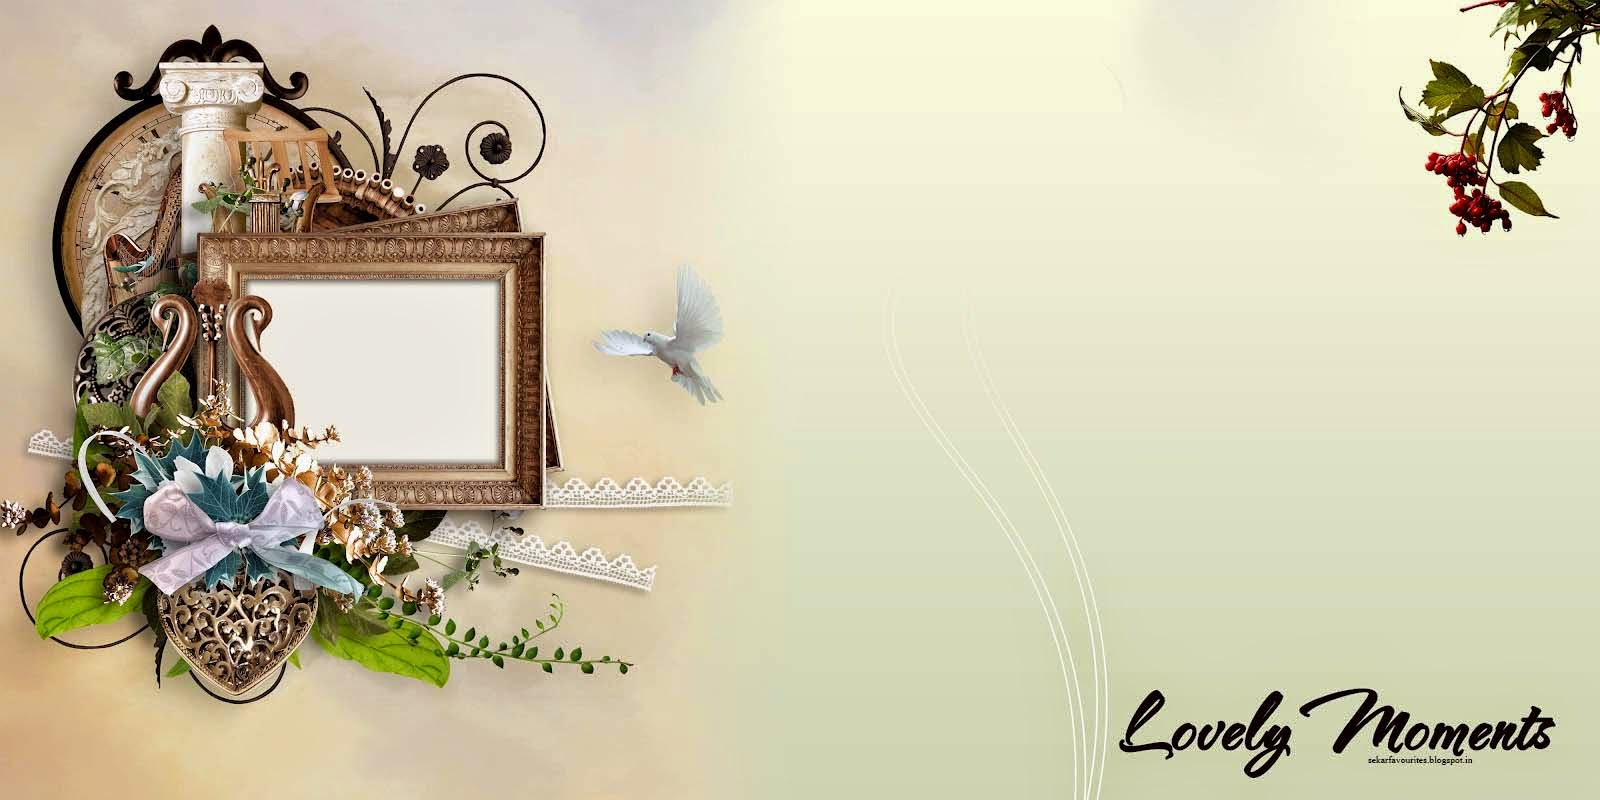 Karizma Album Background Photo Shop Design Psd Download Group B